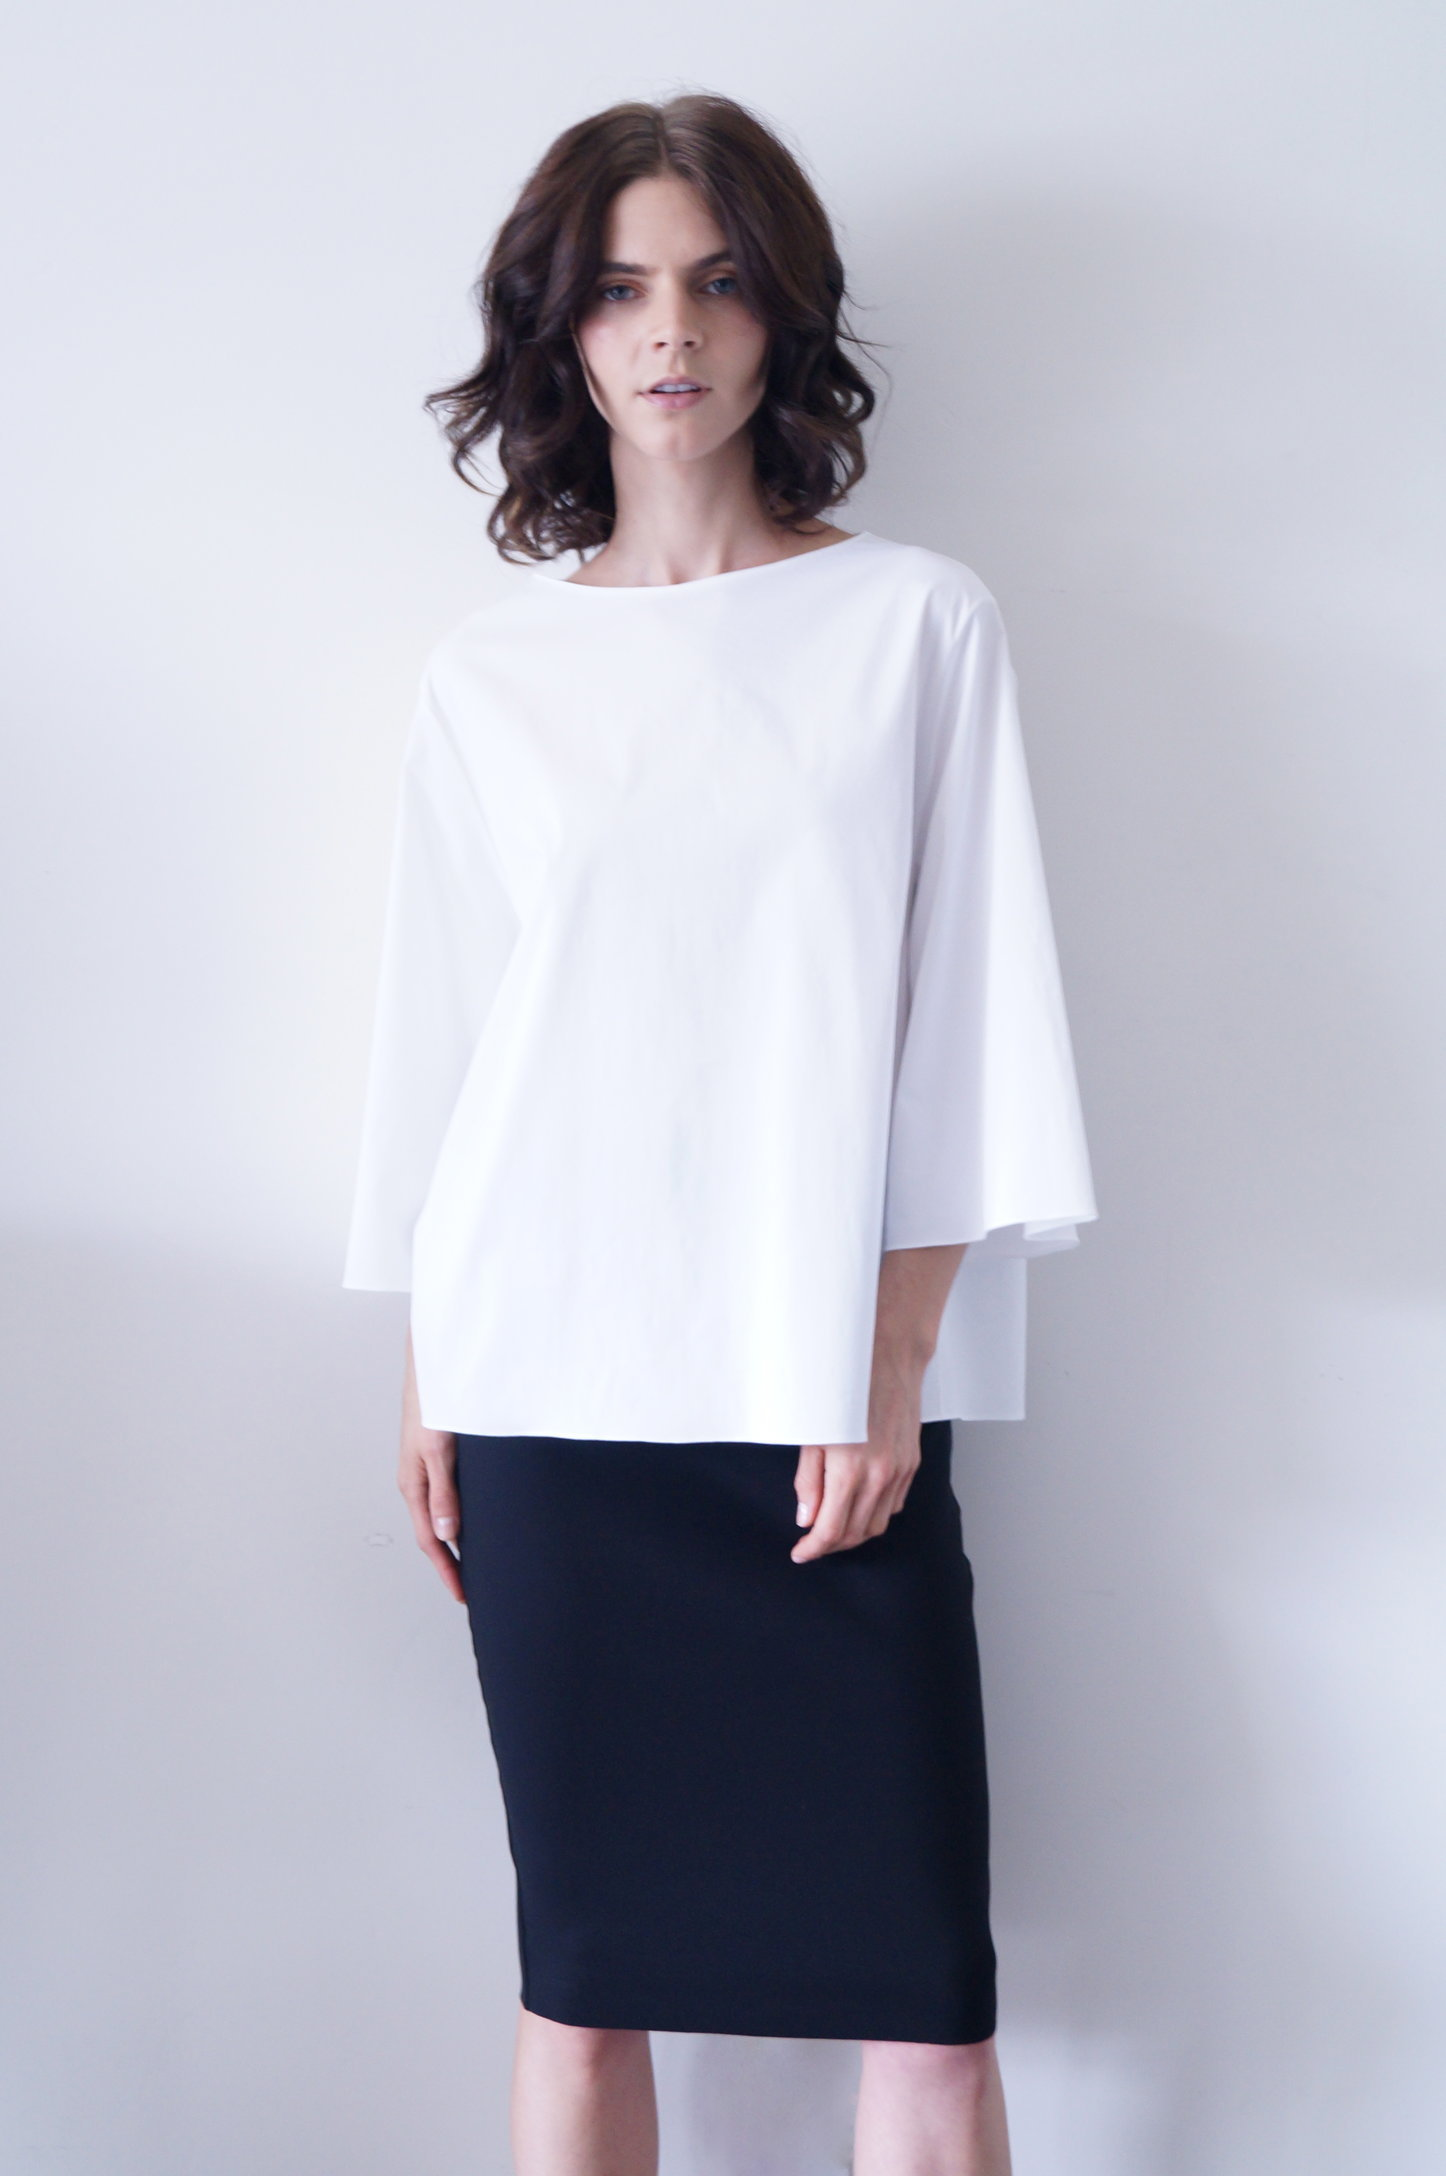 bolarin top in white cotton   590.00